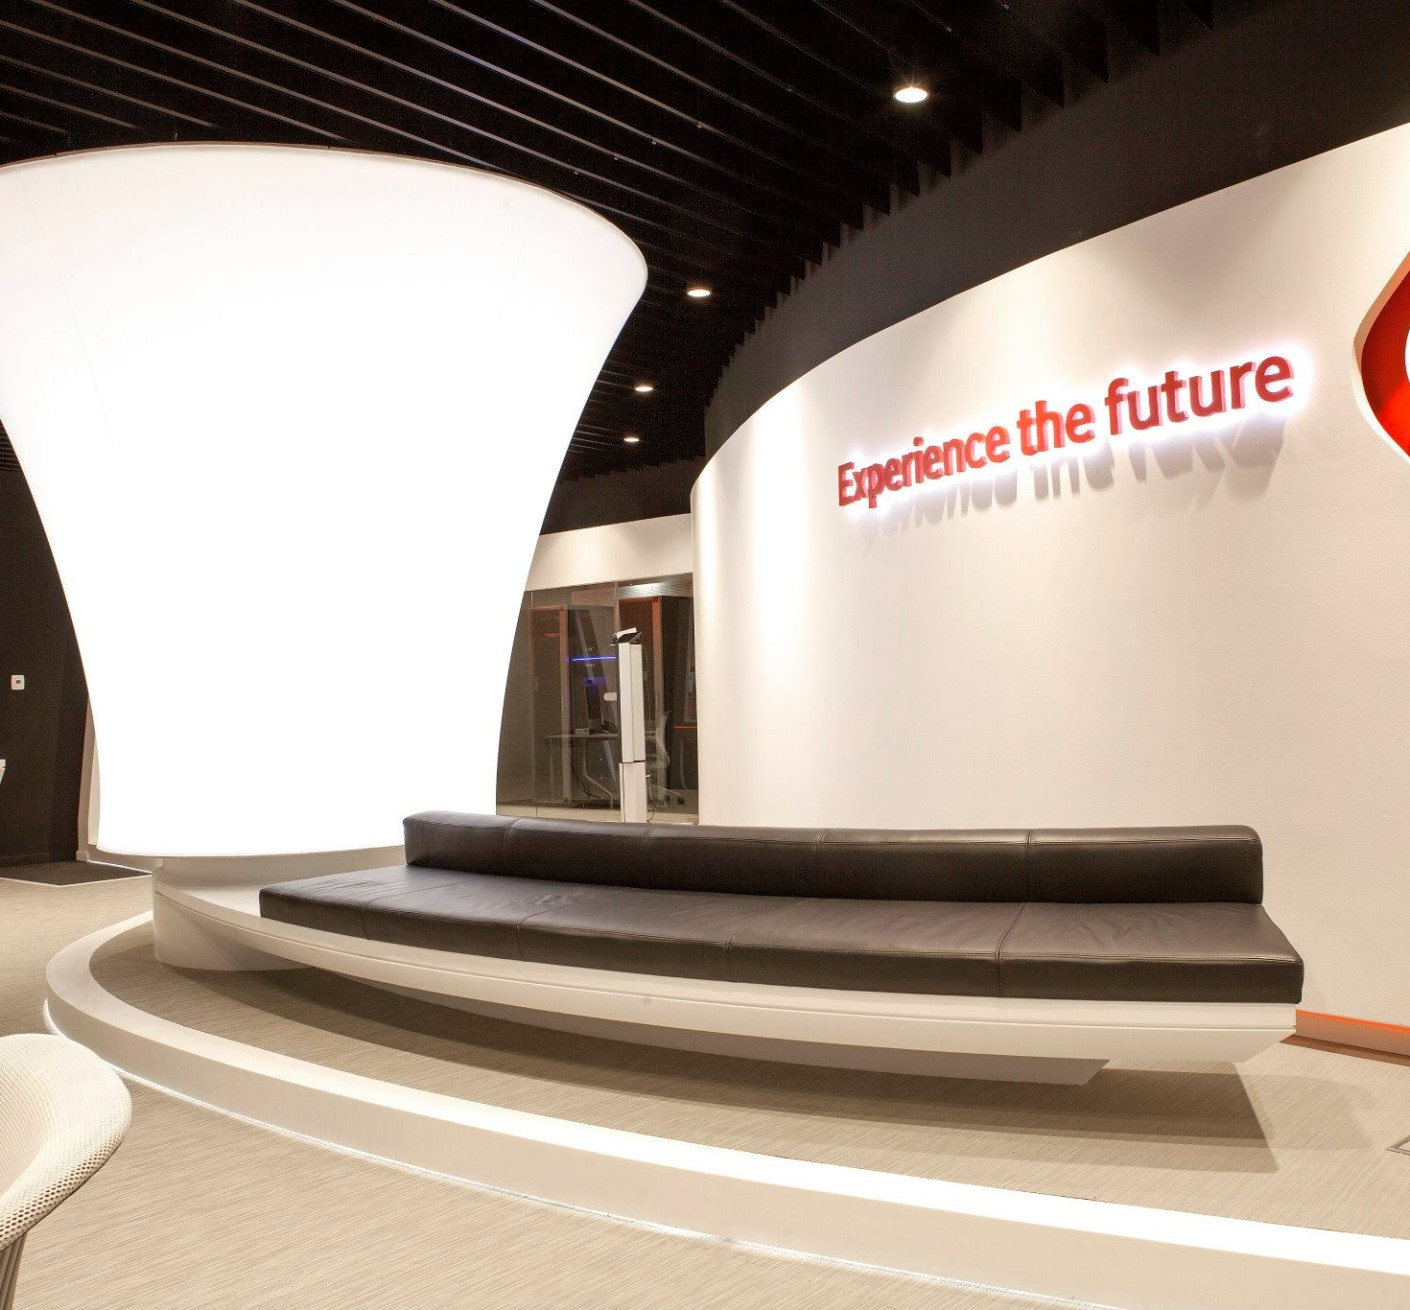 VODAFONE-Customer-Experience-Center-Pipera_Trivenus-Ama-Design_01